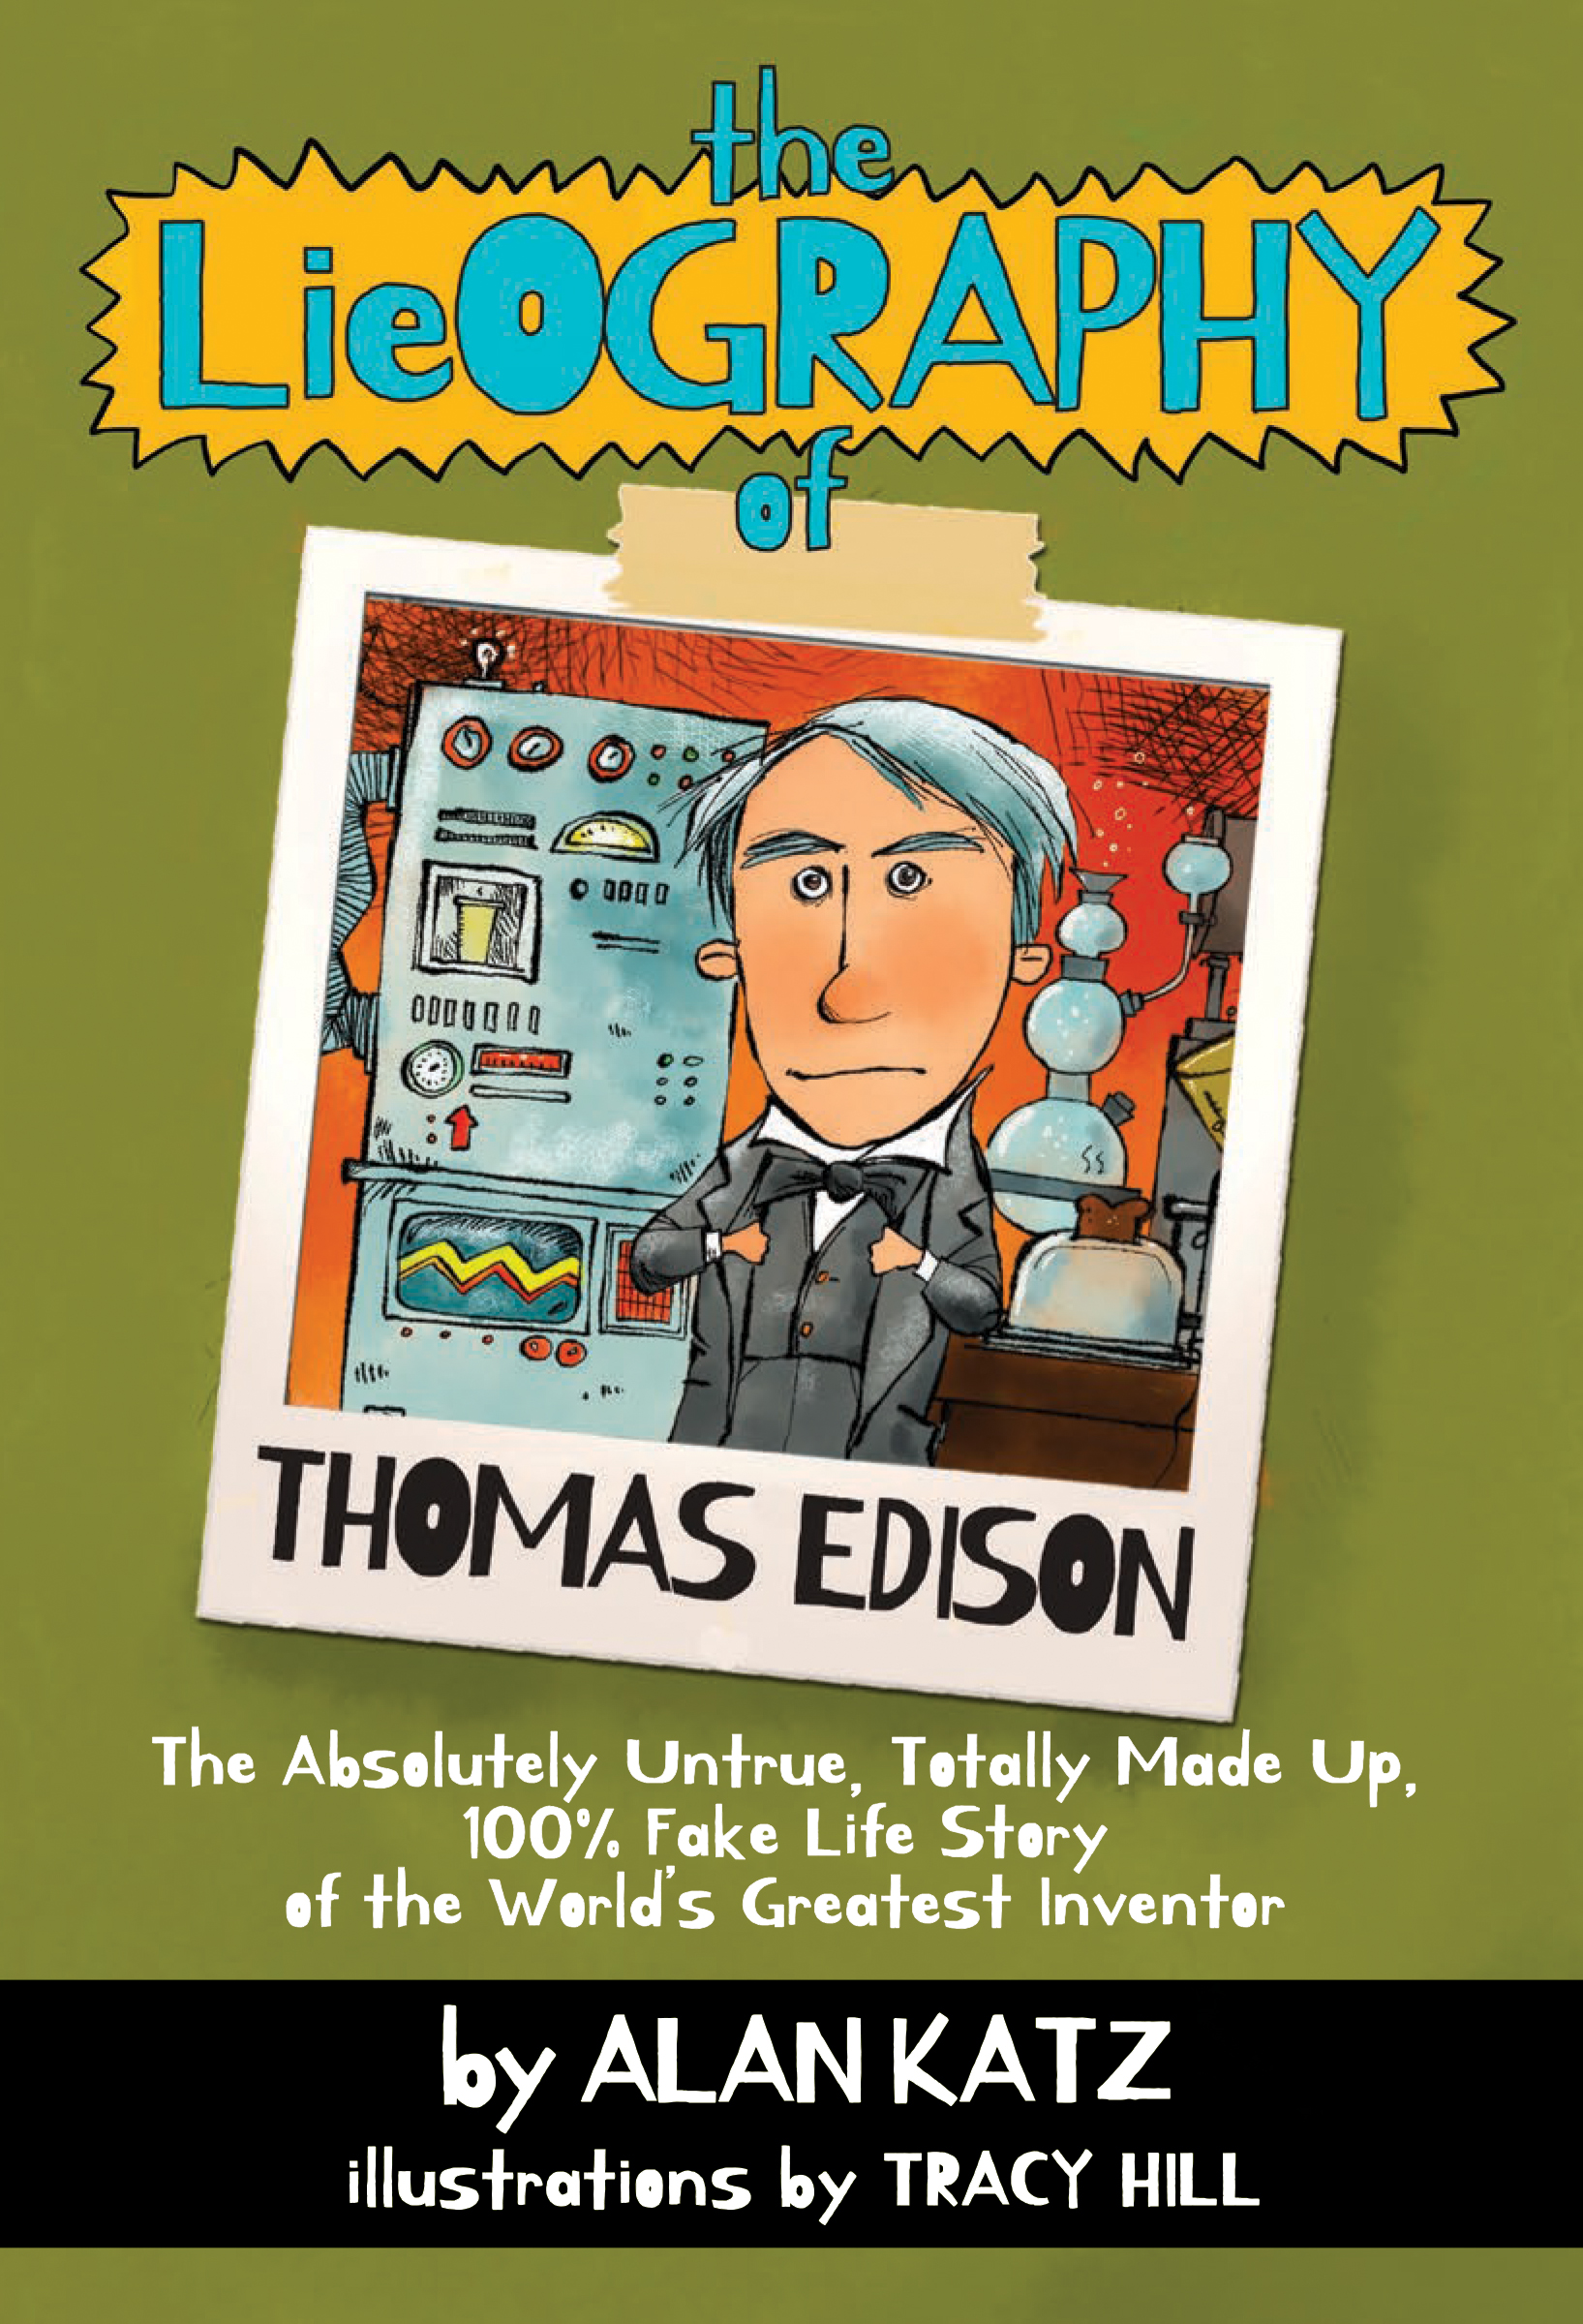 The Lieography of Thomas Edison